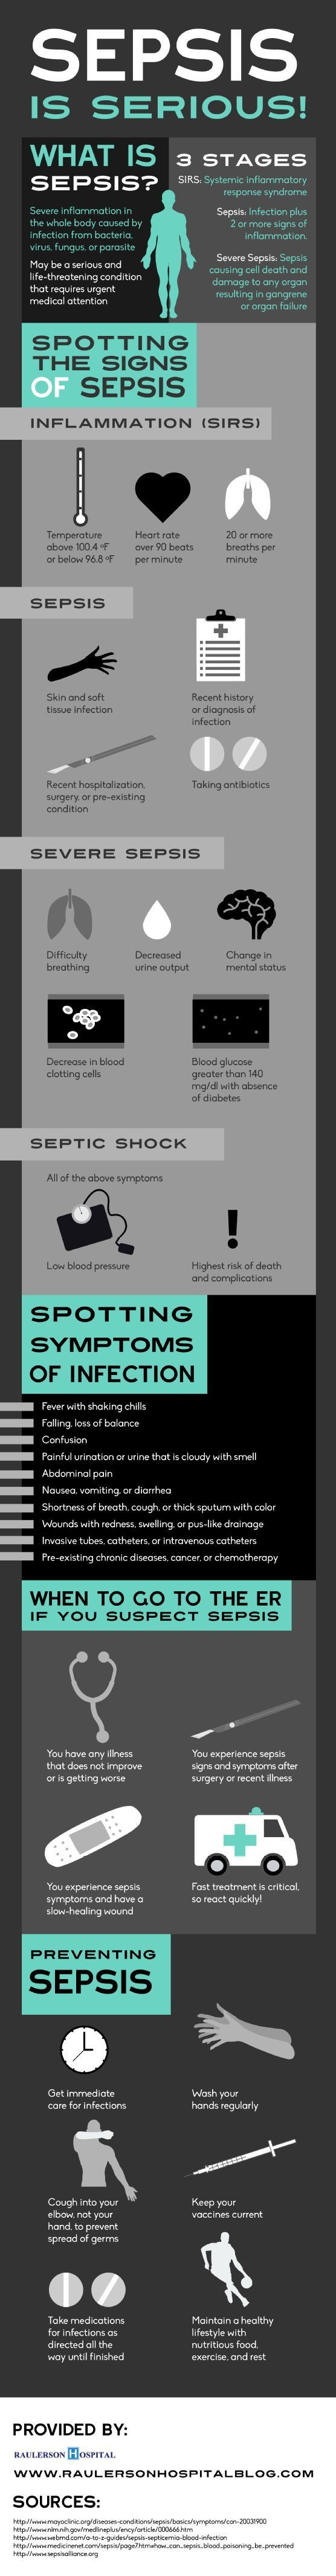 Scared of sepsis? Prevent it by washing your hands regularly, keeping your vaccines currents, and maintaining an overall healthy lifestyle! Click over to this Okeechobee health care infographic to get more advice about preventing sepsis and protecting you